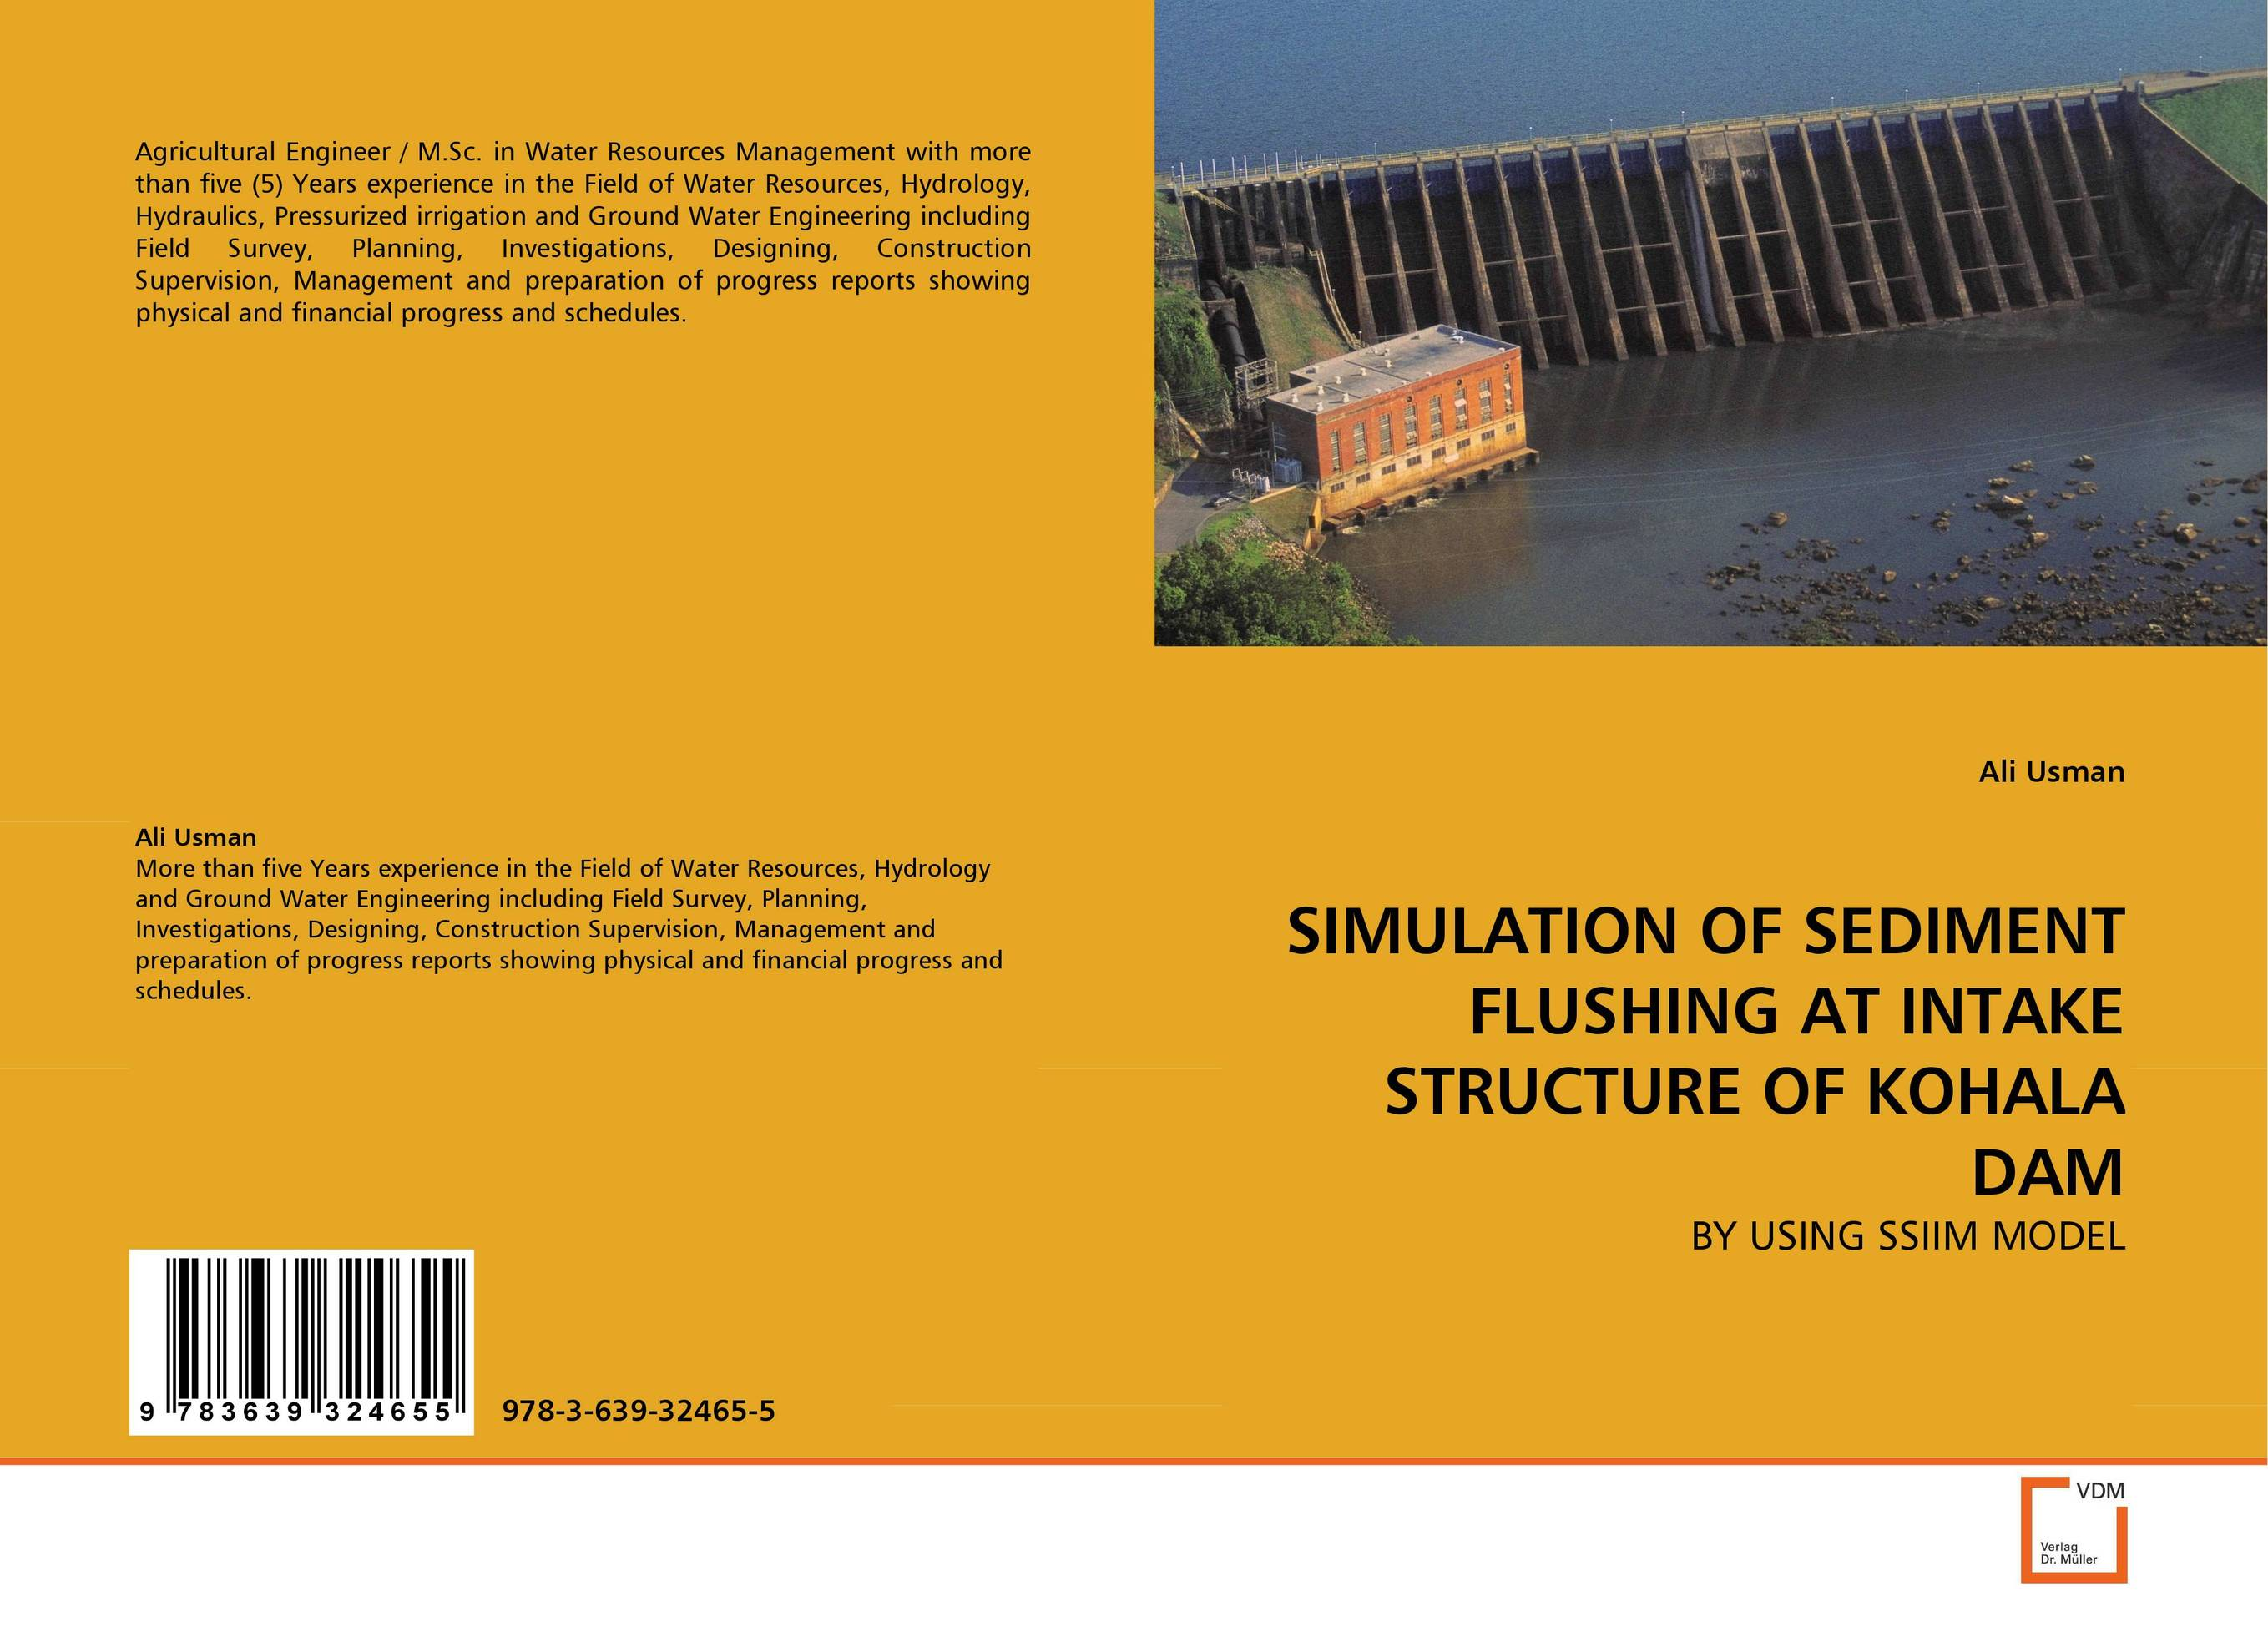 SIMULATION OF SEDIMENT FLUSHING AT INTAKE STRUCTURE OF KOHALA DAM paolo brandimarte handbook in monte carlo simulation applications in financial engineering risk management and economics